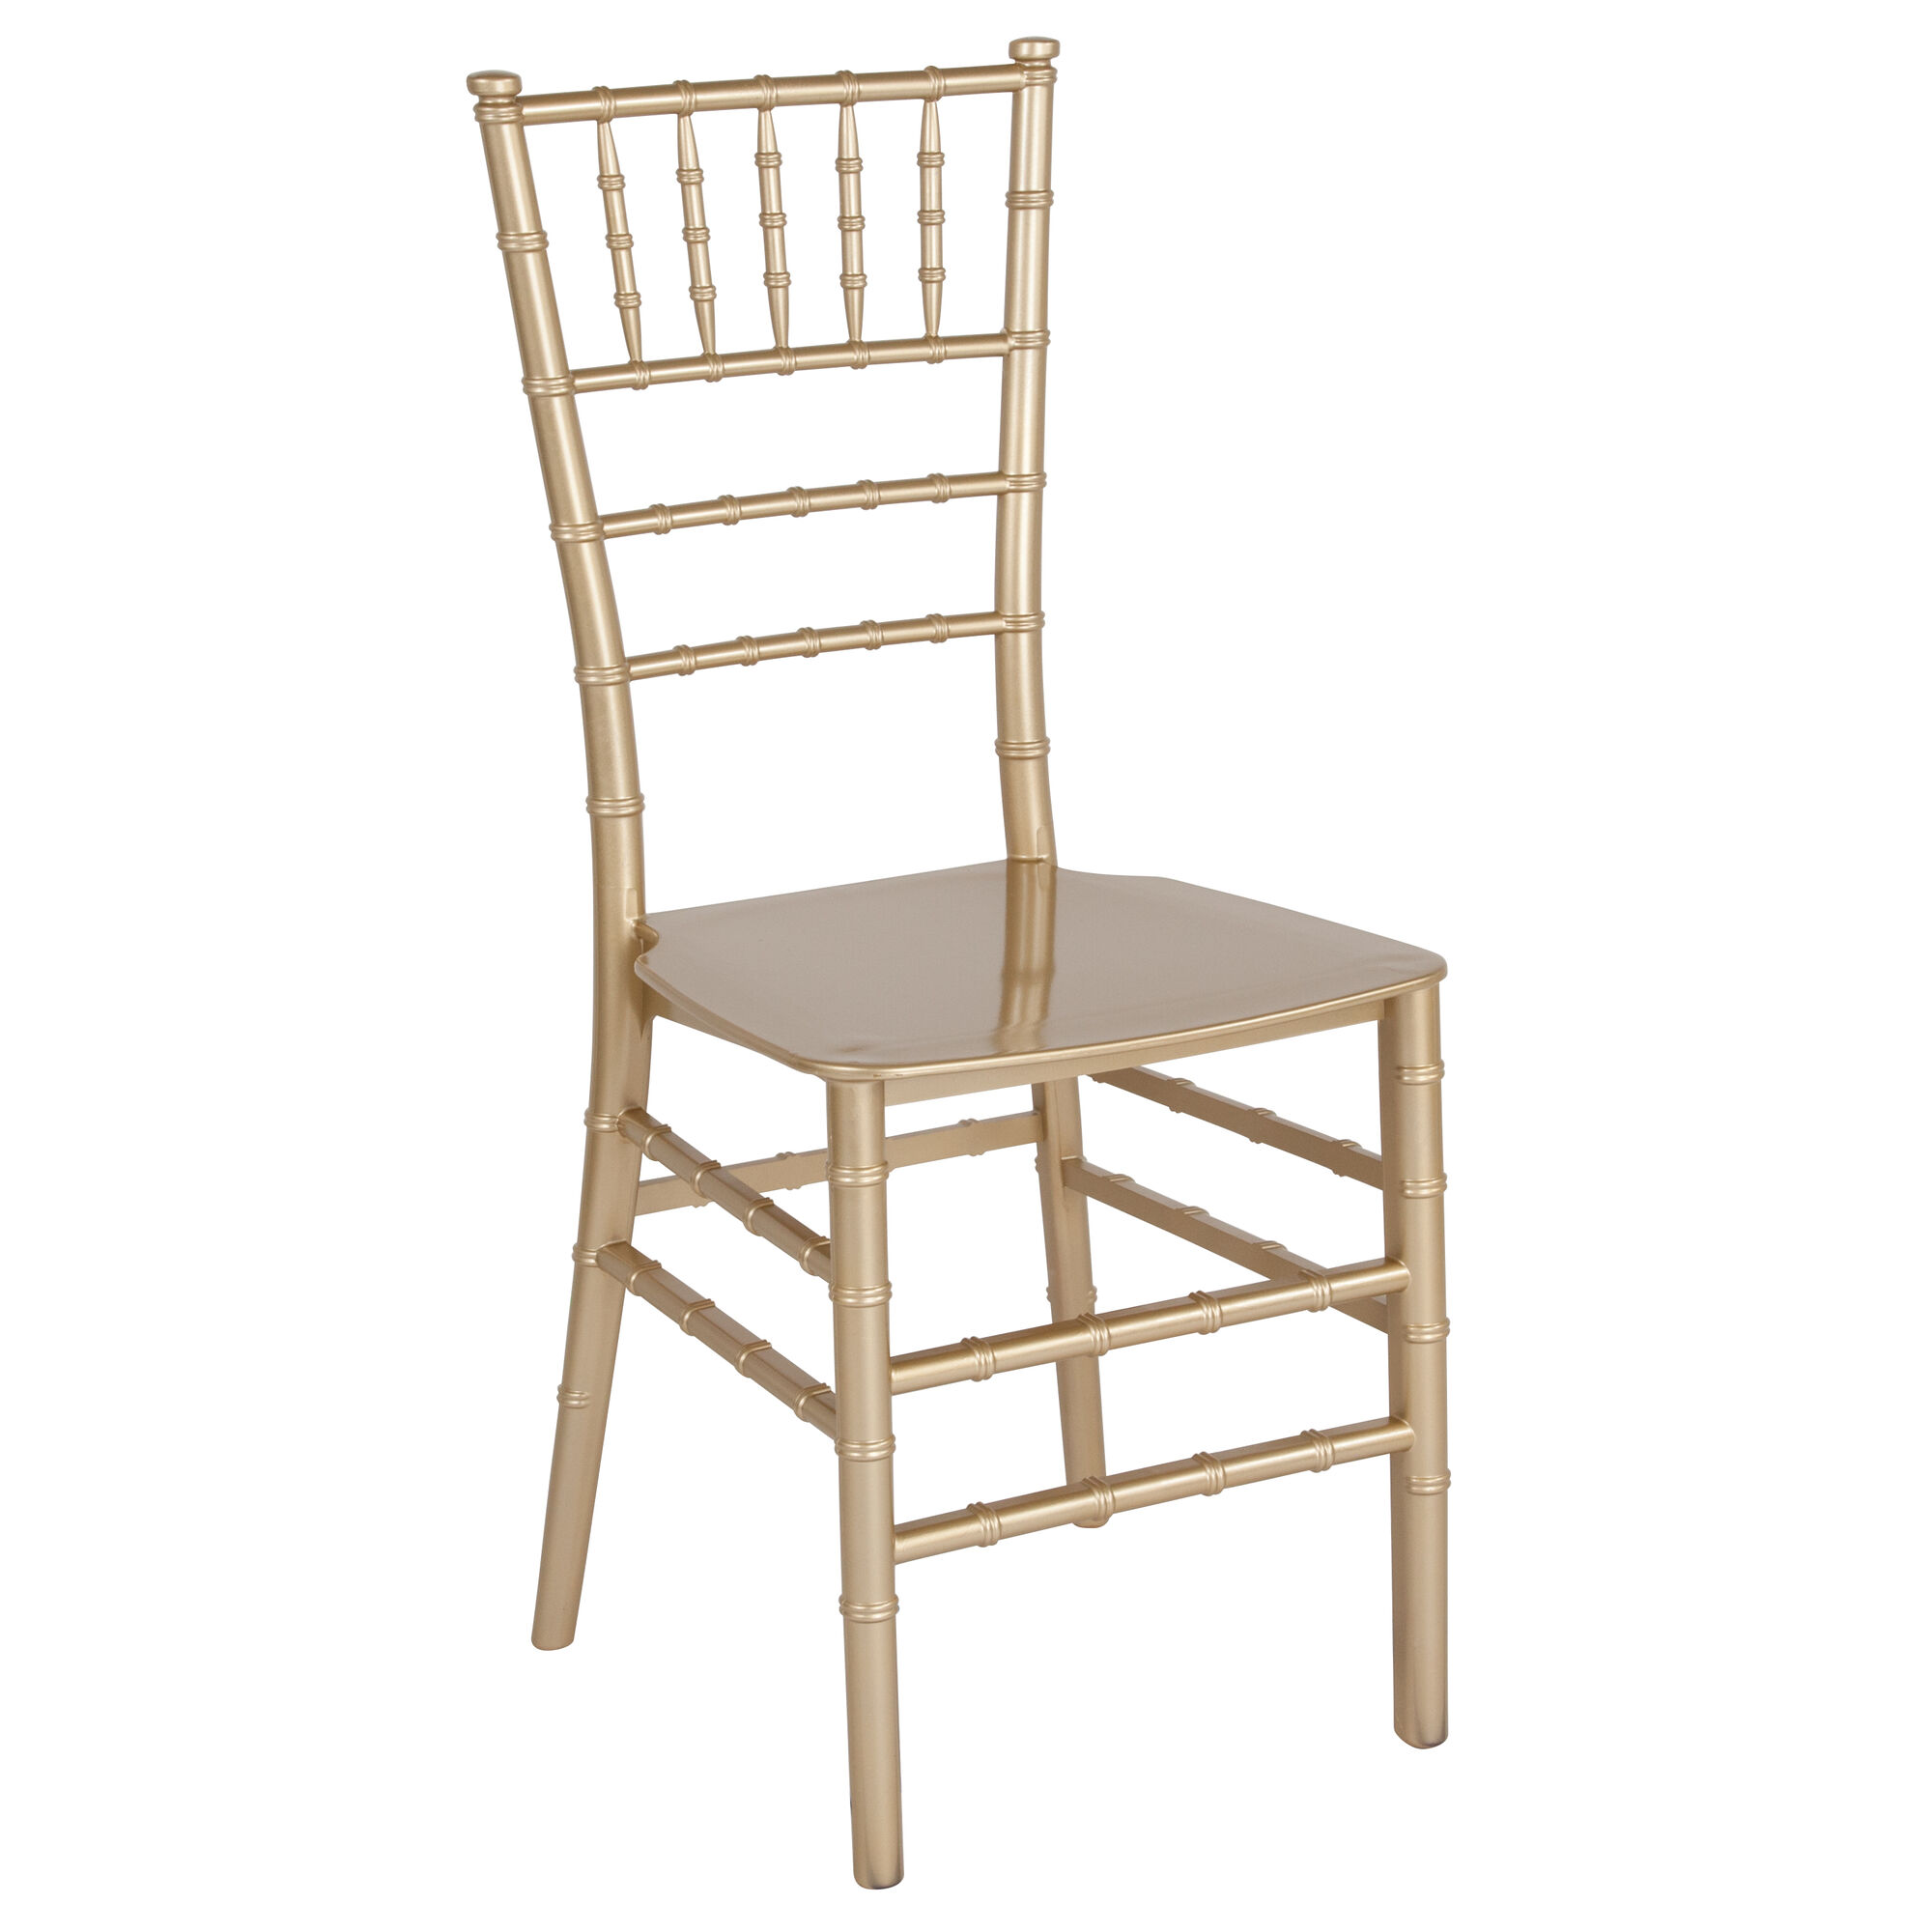 Magnificent Hercules Series Gold Resin Stacking Chiavari Chair With Free Cushion Bralicious Painted Fabric Chair Ideas Braliciousco